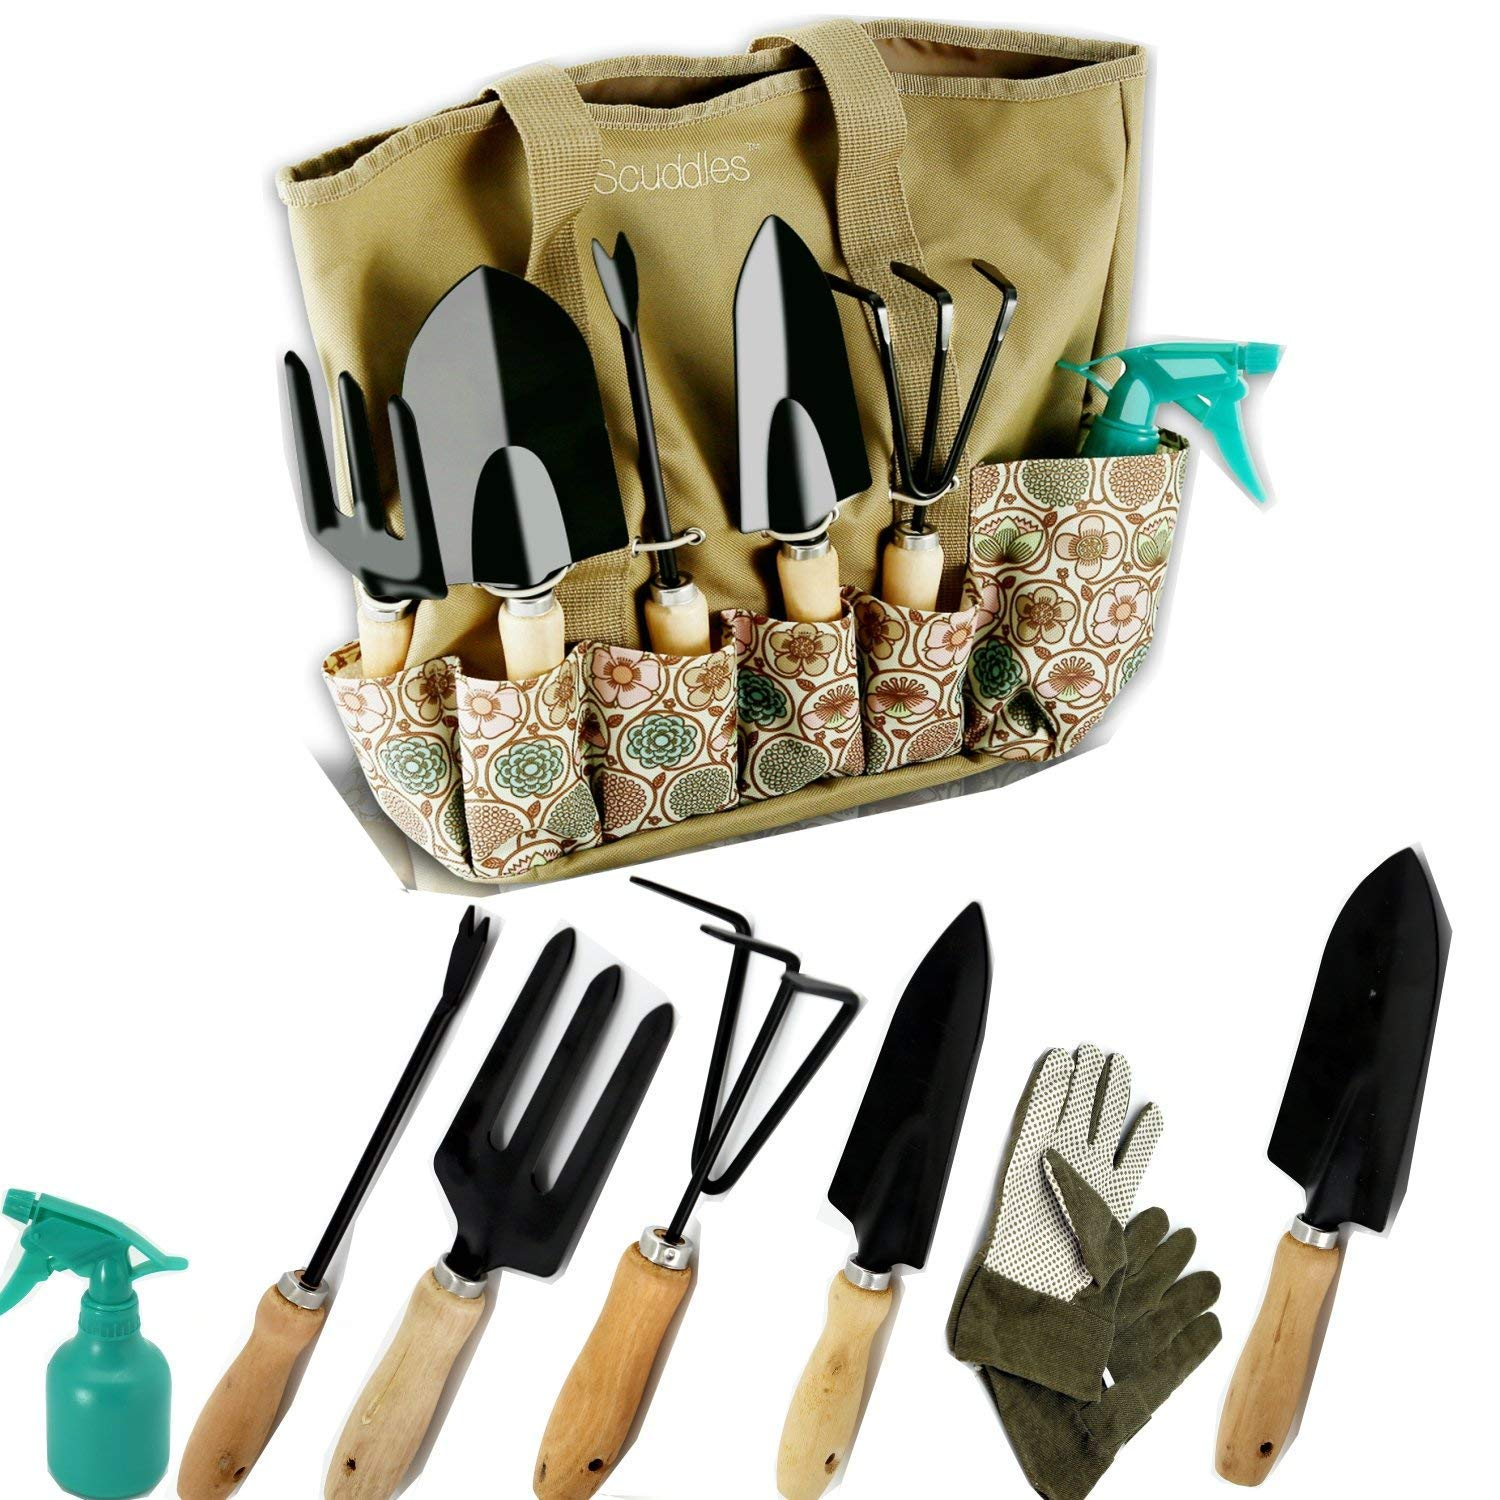 Scuddles Garden Tools Set Healthy Indian